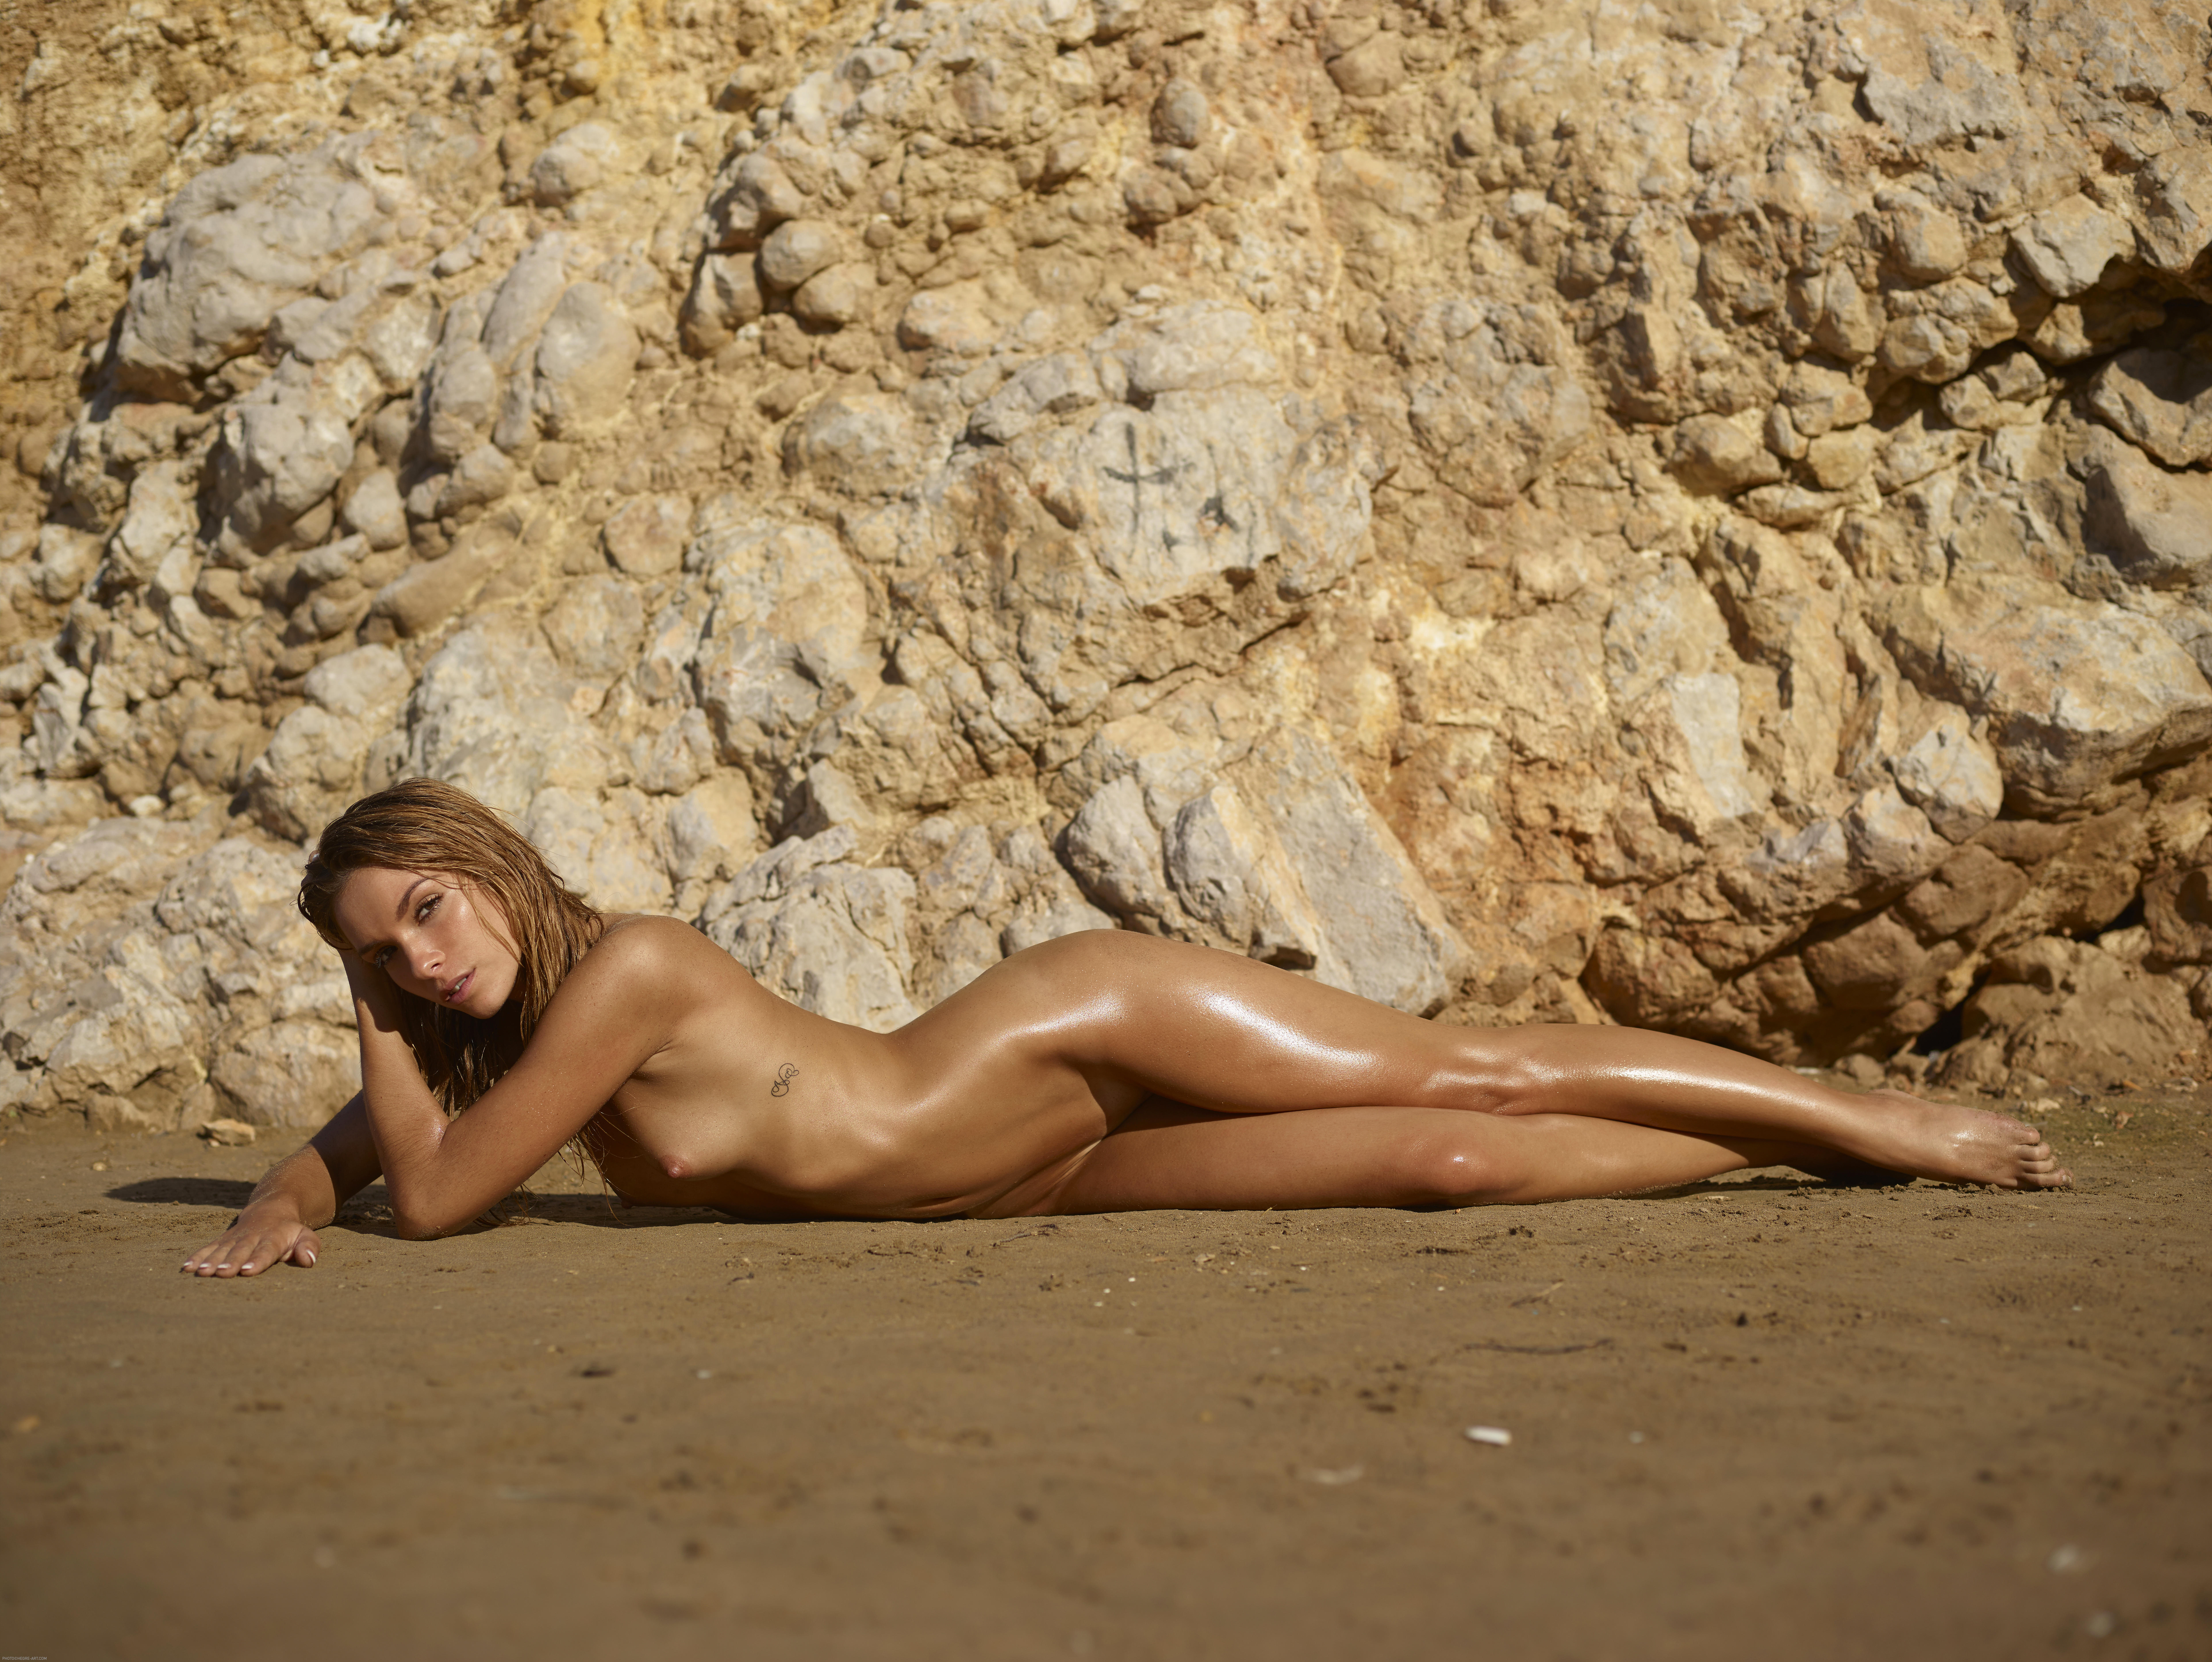 How Oily naked ladies on beach really